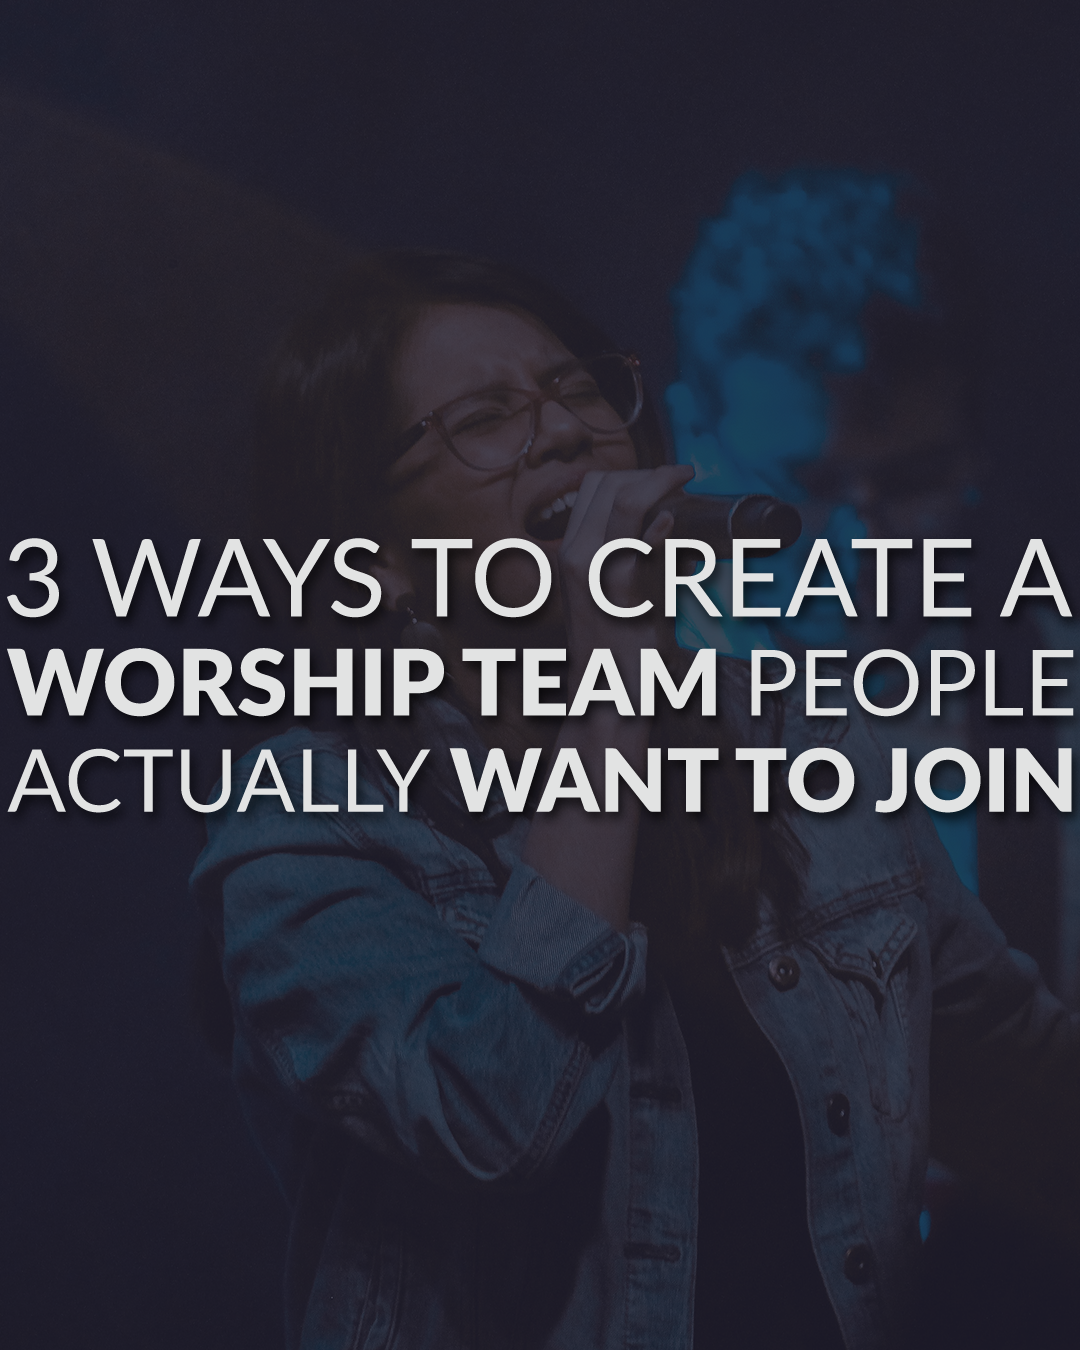 3 Ways To Create A Worship Team People Actually Want To Join